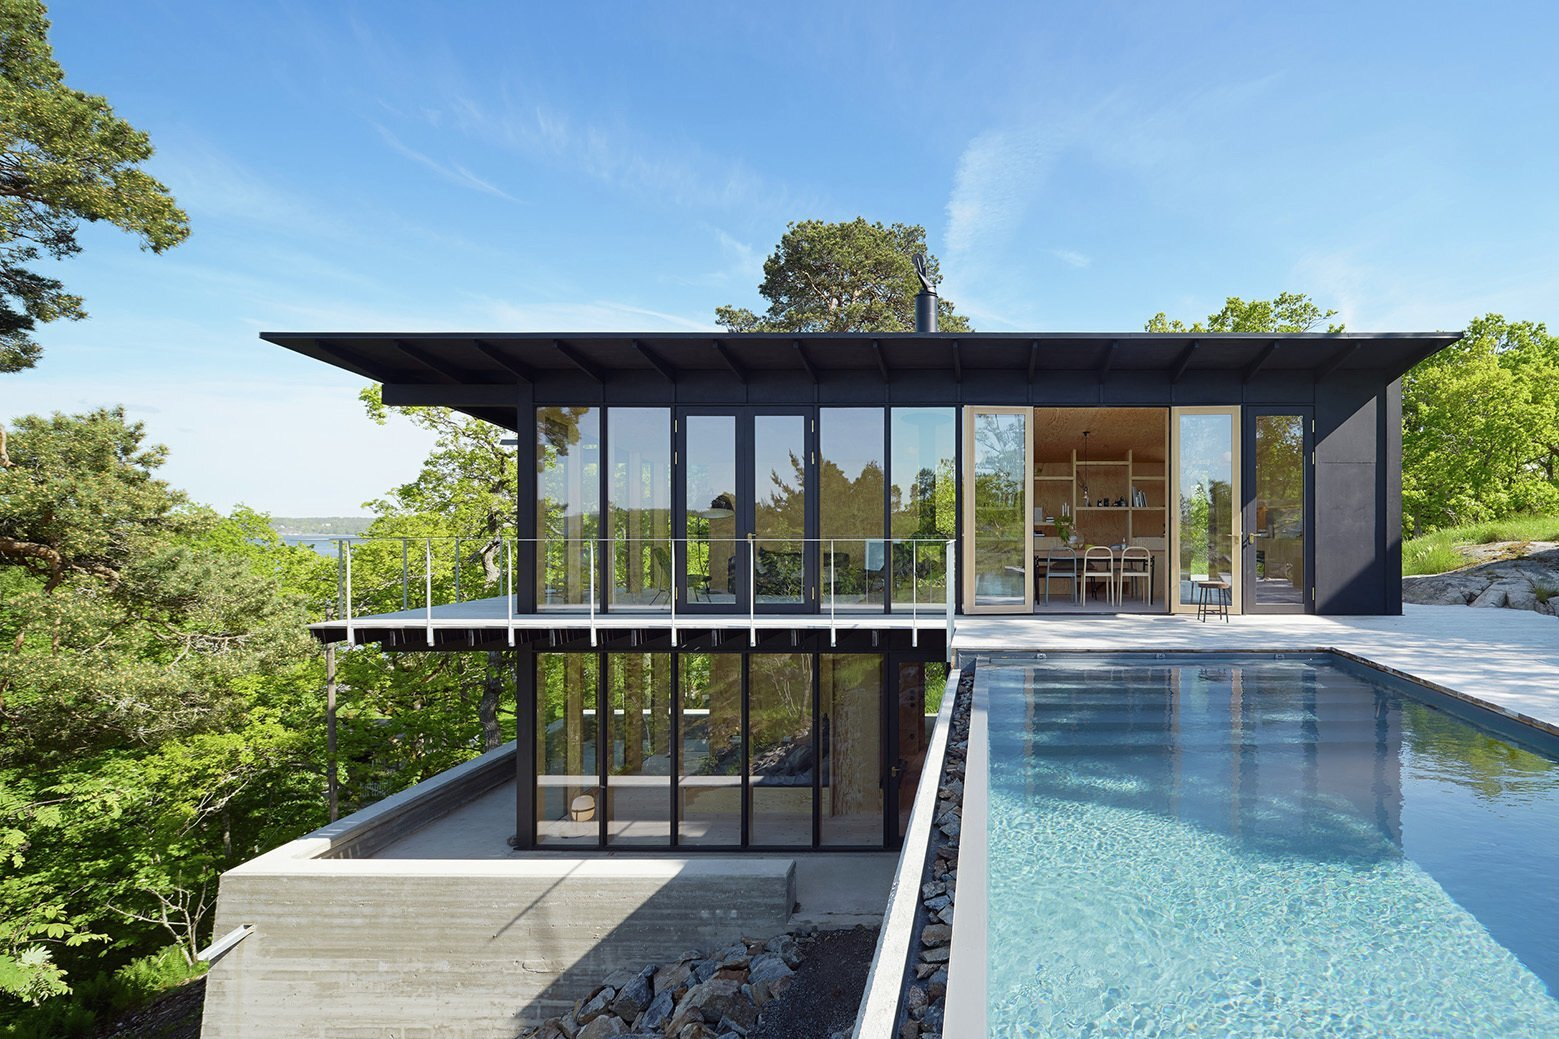 Aspvik House - Small House - Andreas Martin Löf Arkitekter - Sweden - Exterior - Humble Homes